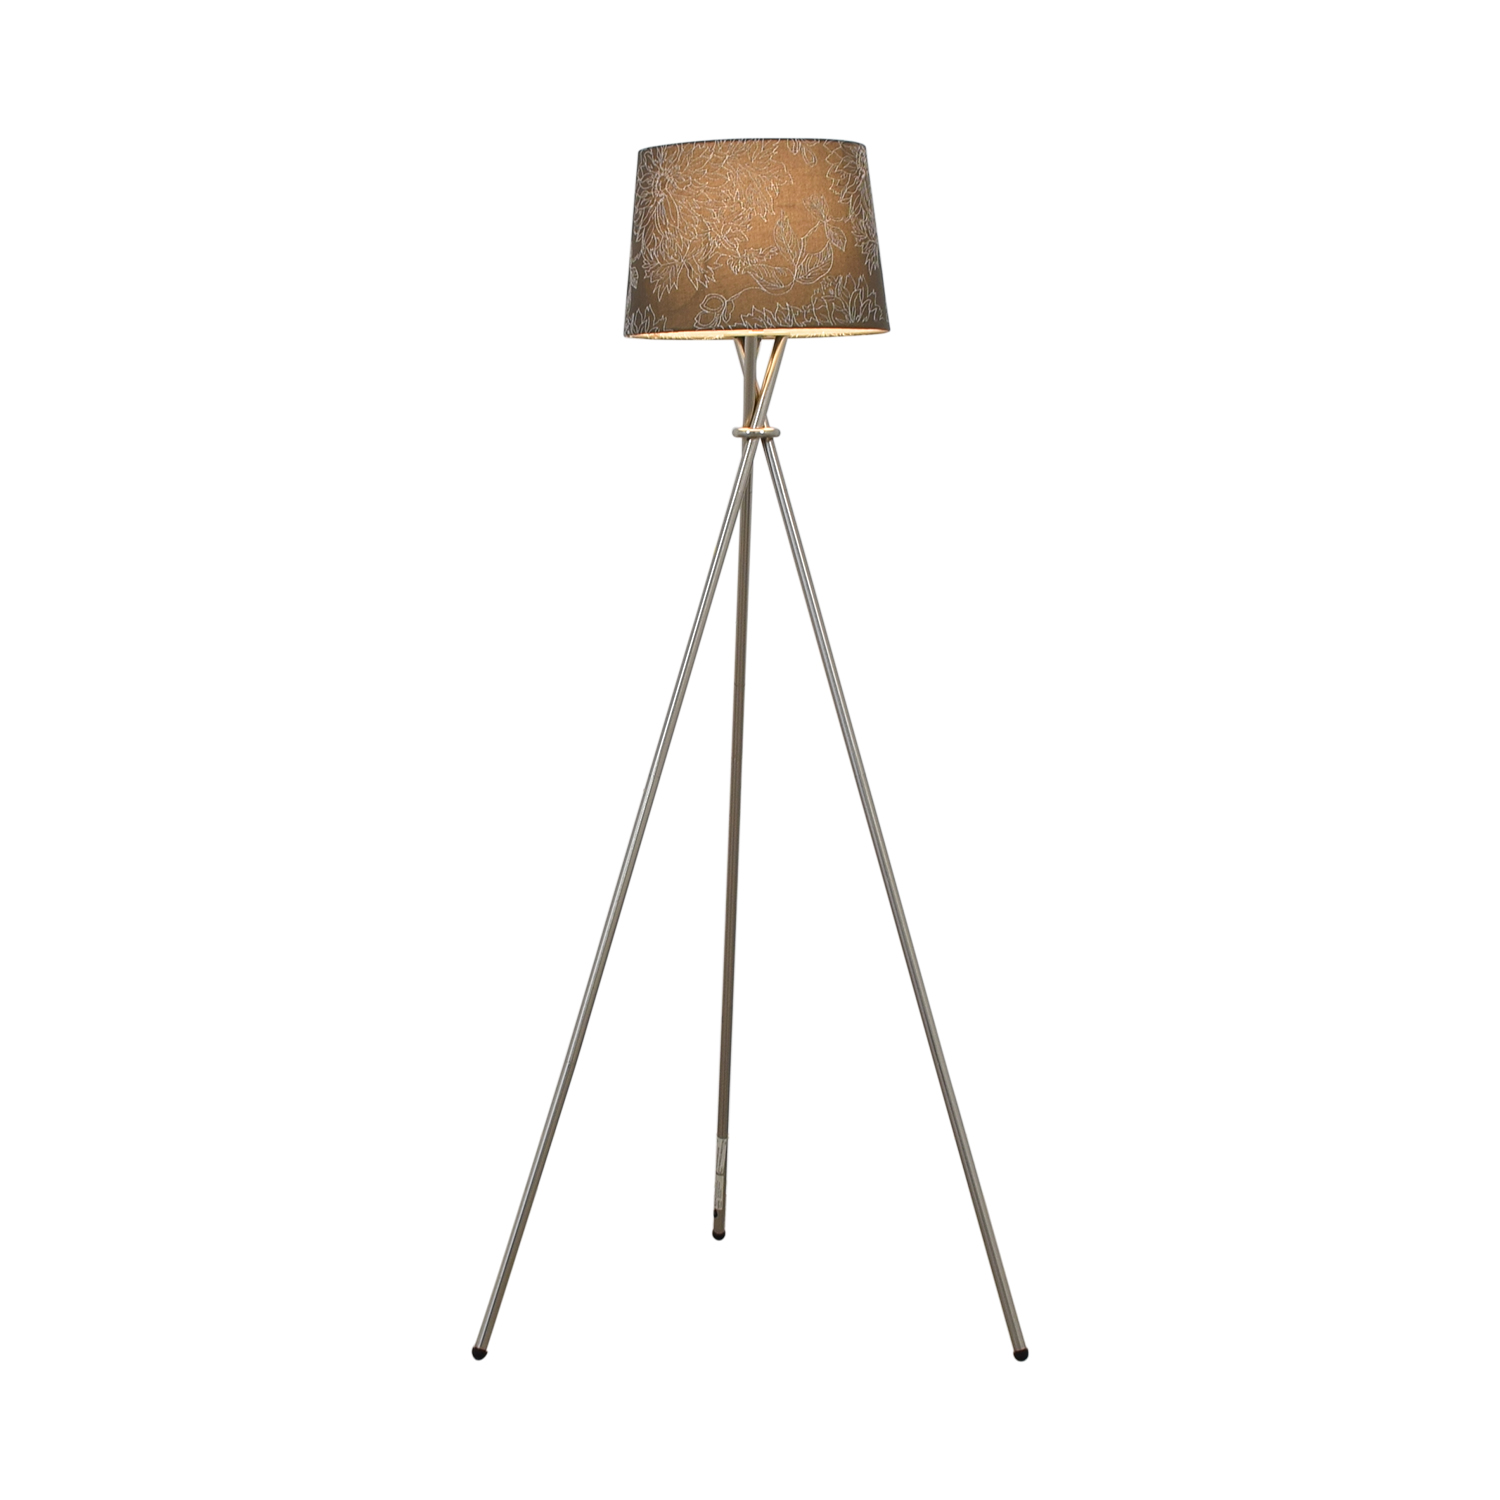 Tripod Floor Lamp dimensions